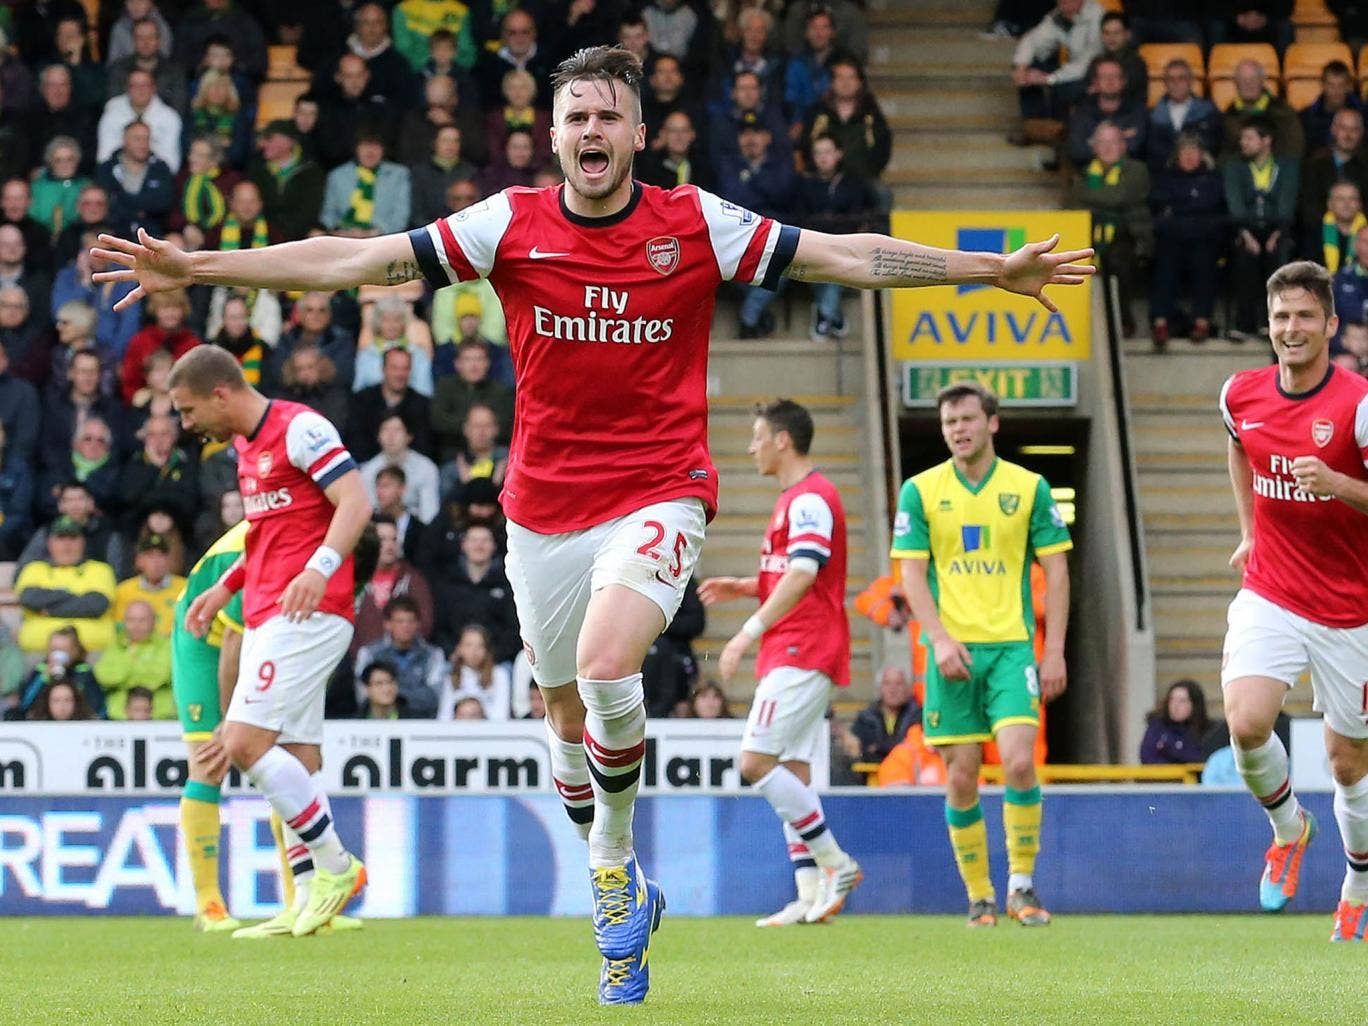 Carl Jenkinson celebrates scoring the away side's second, his first goal for the club